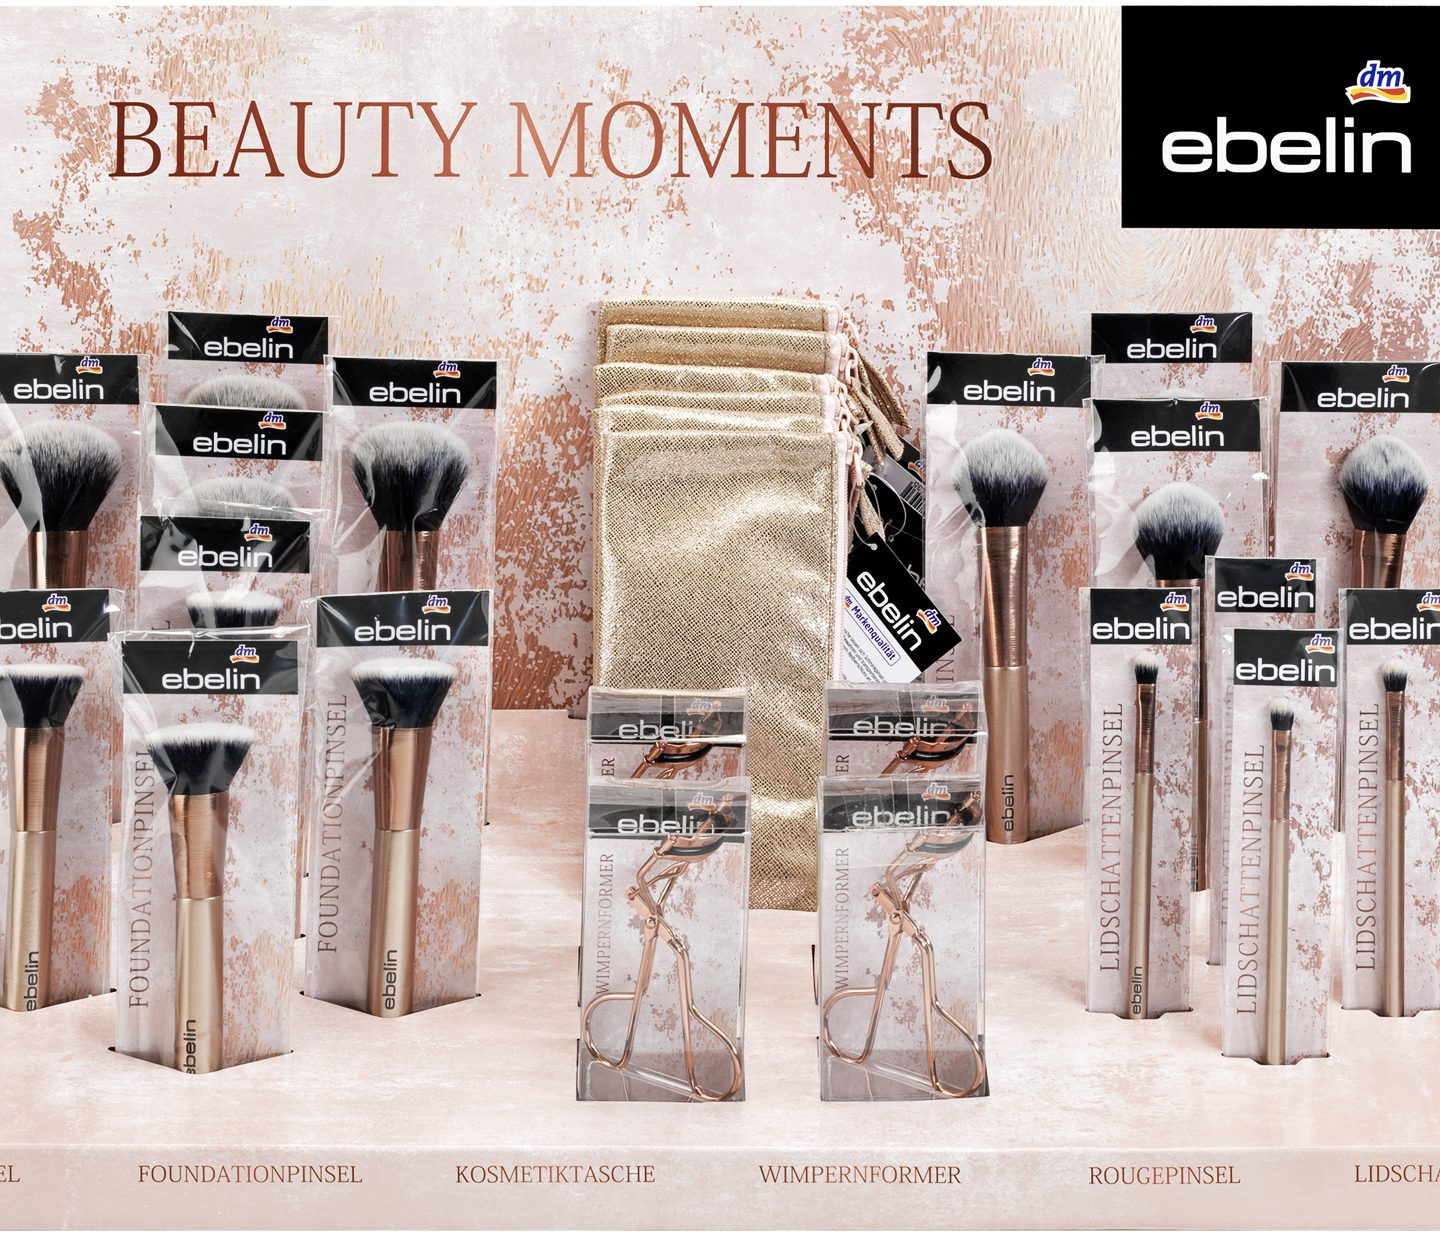 dm News: ebelin Limited Edition Beauty Moments